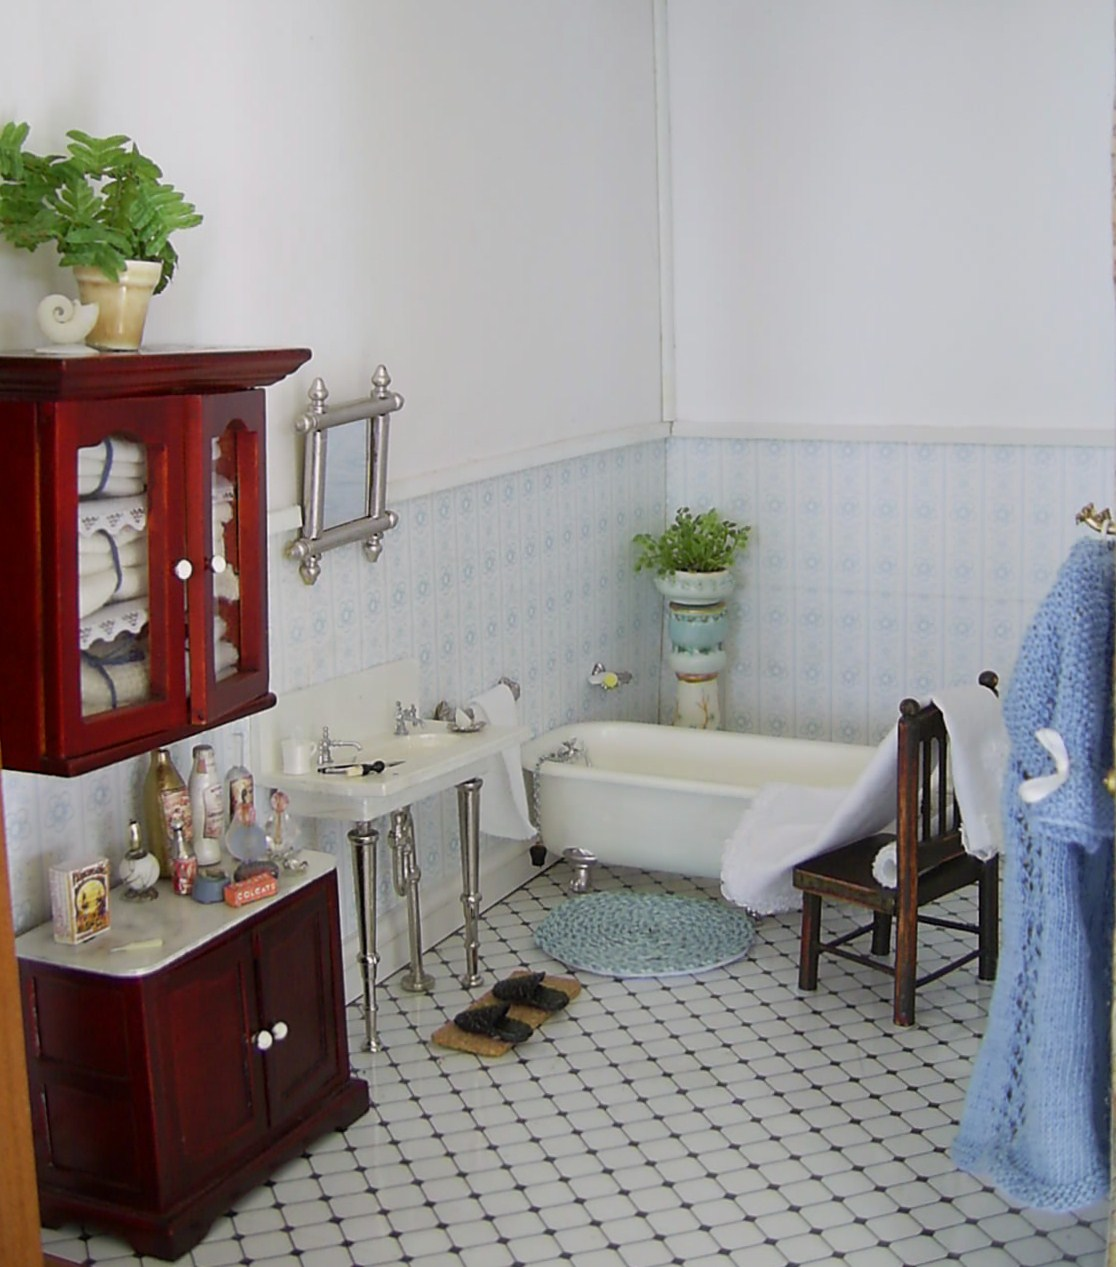 Dolls houses and minis edwardian dolls house decoration for Edwardian bathroom design